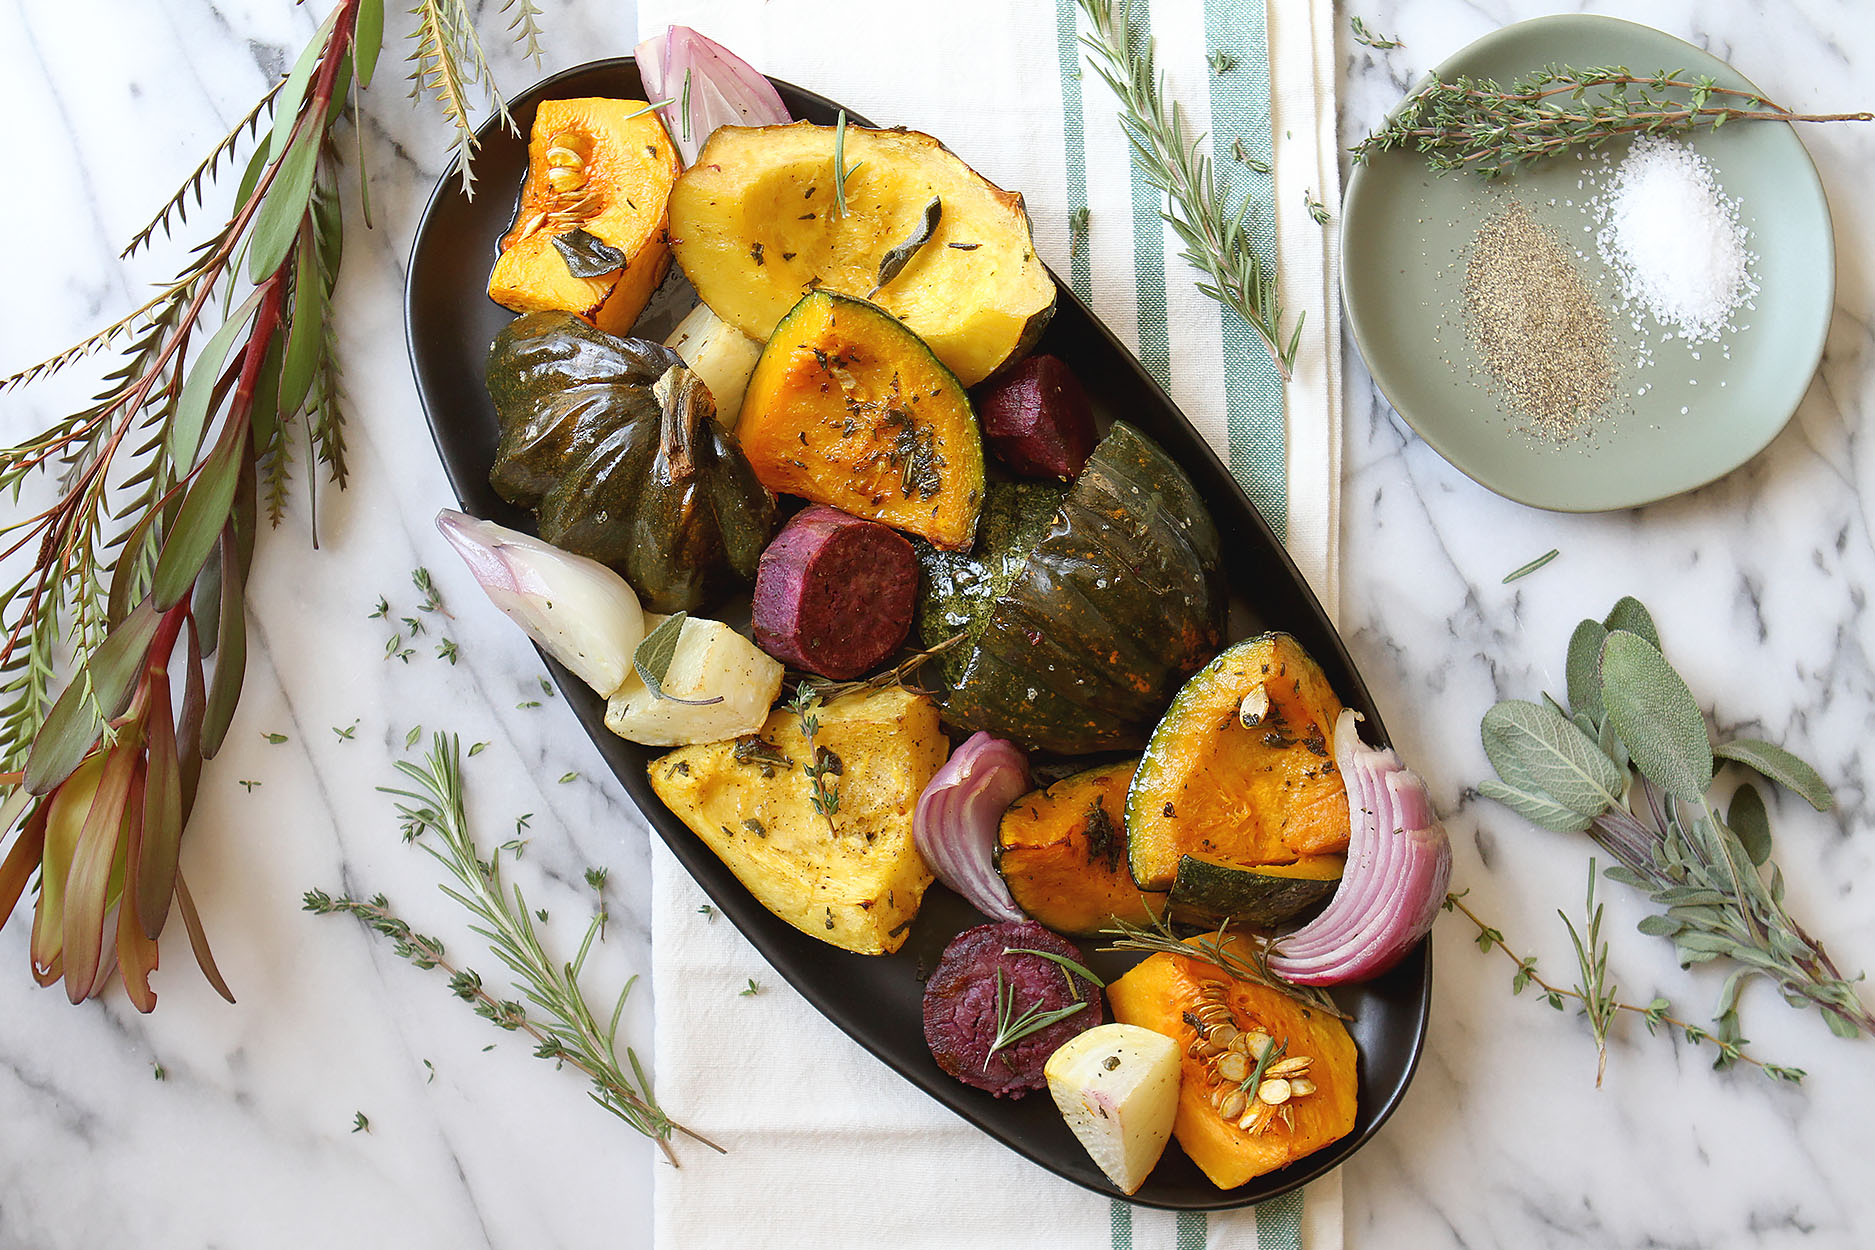 an oblong black plate full of roasted squash, onions, turnips, and beets. Herbs and greenery to the side